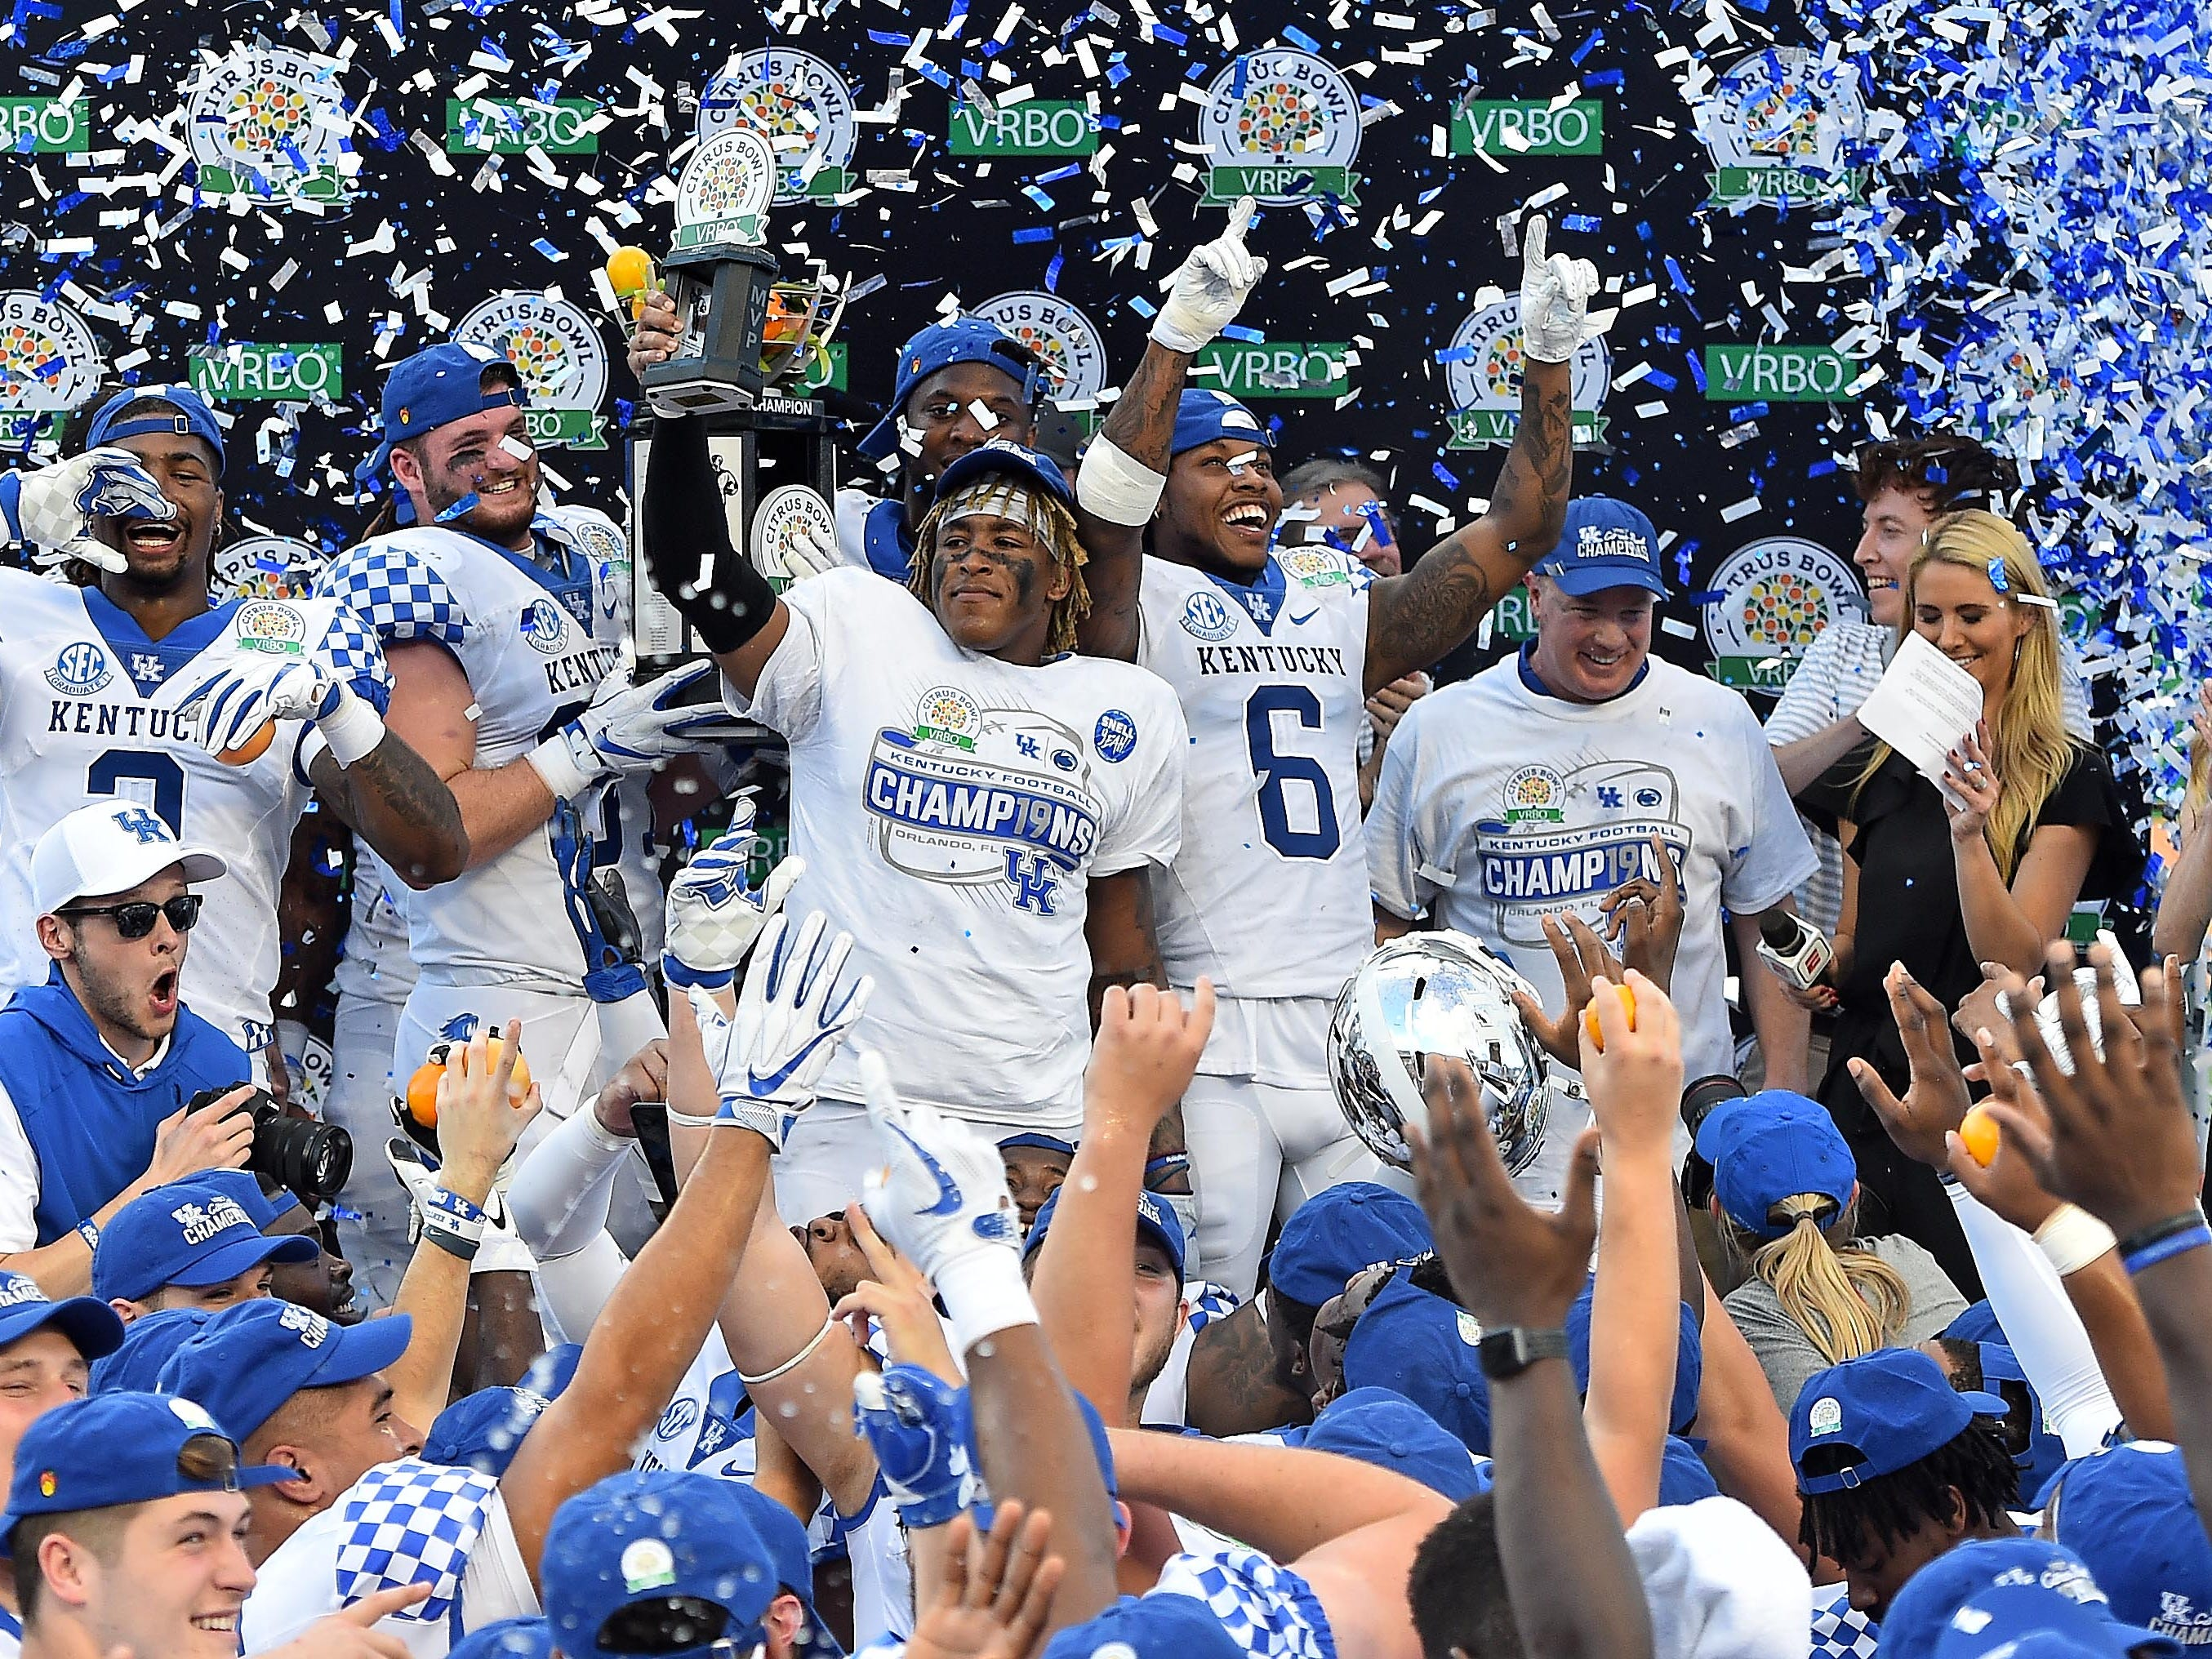 Kentucky players celebrate after defeating the Penn State in the 2019 Citrus Bowl.